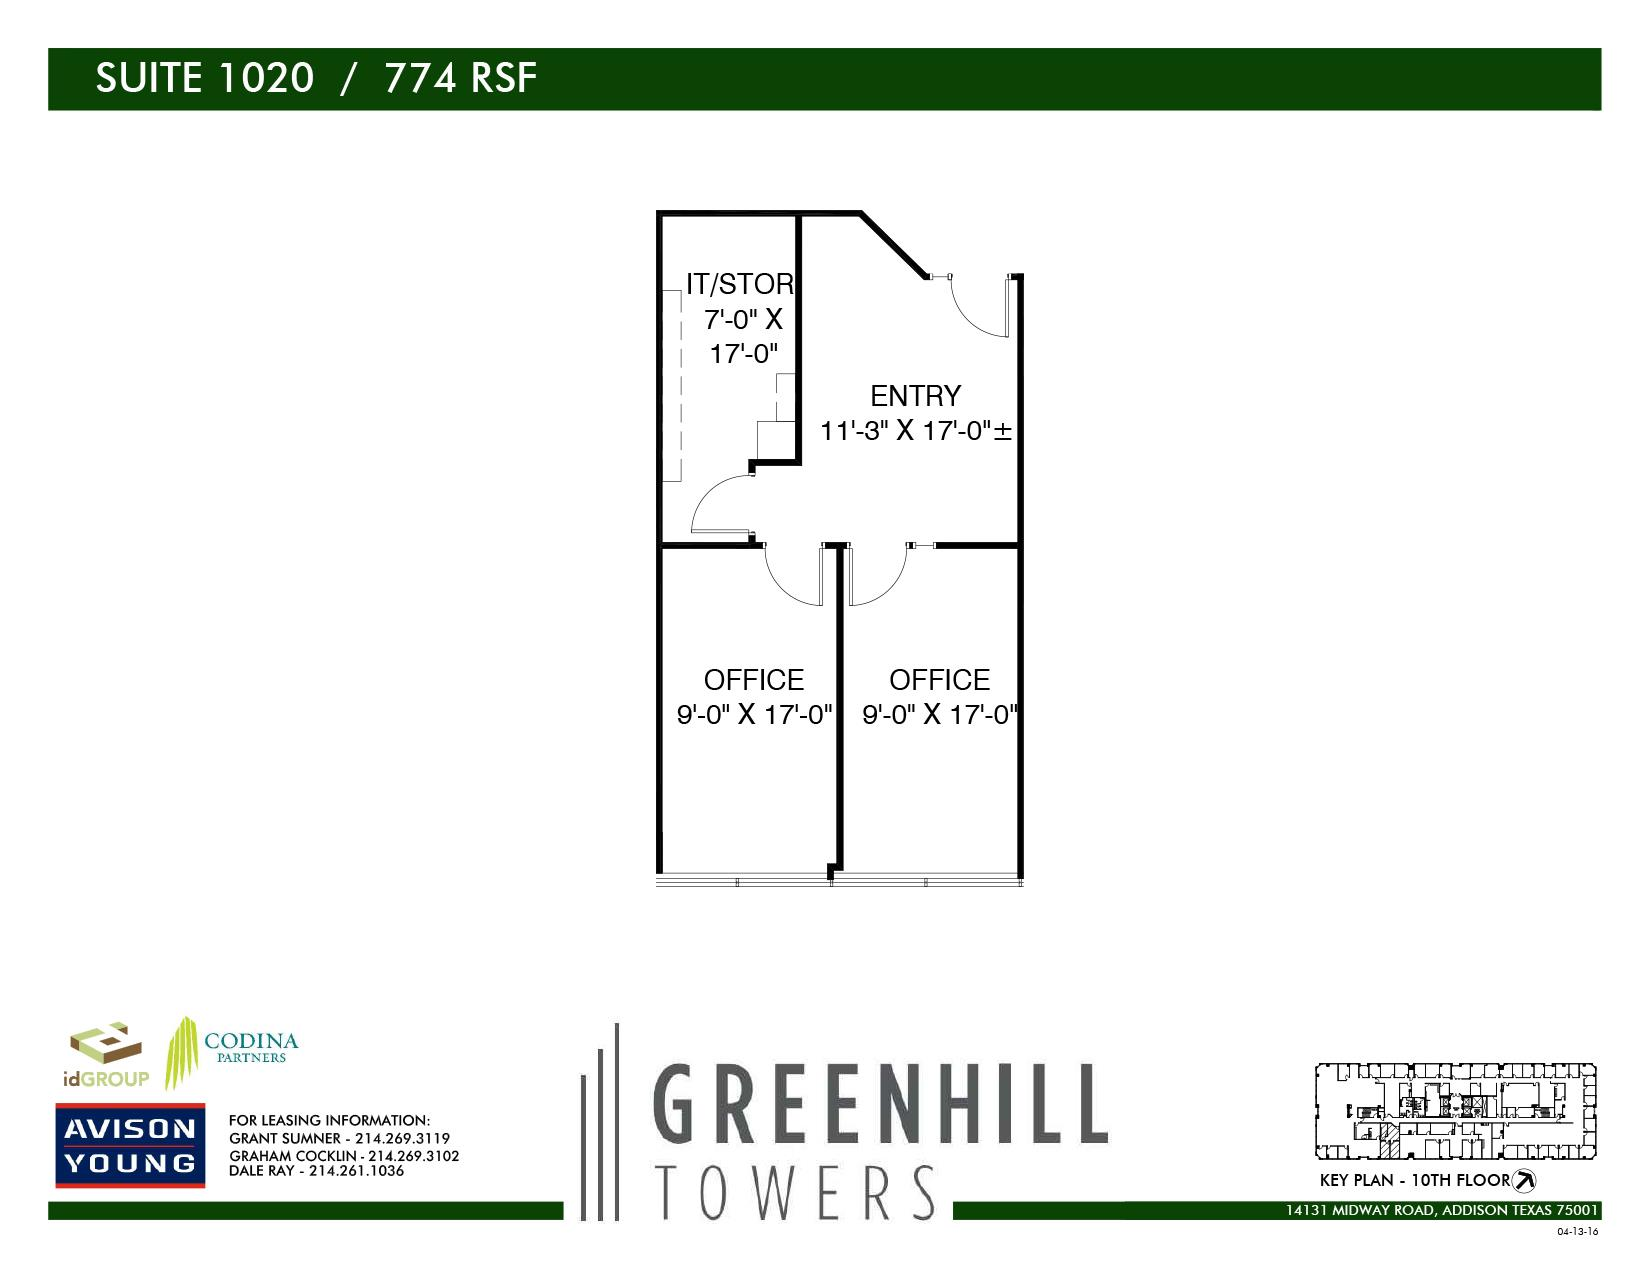 Codina Partners | Greenhill Towers - Suite 1020